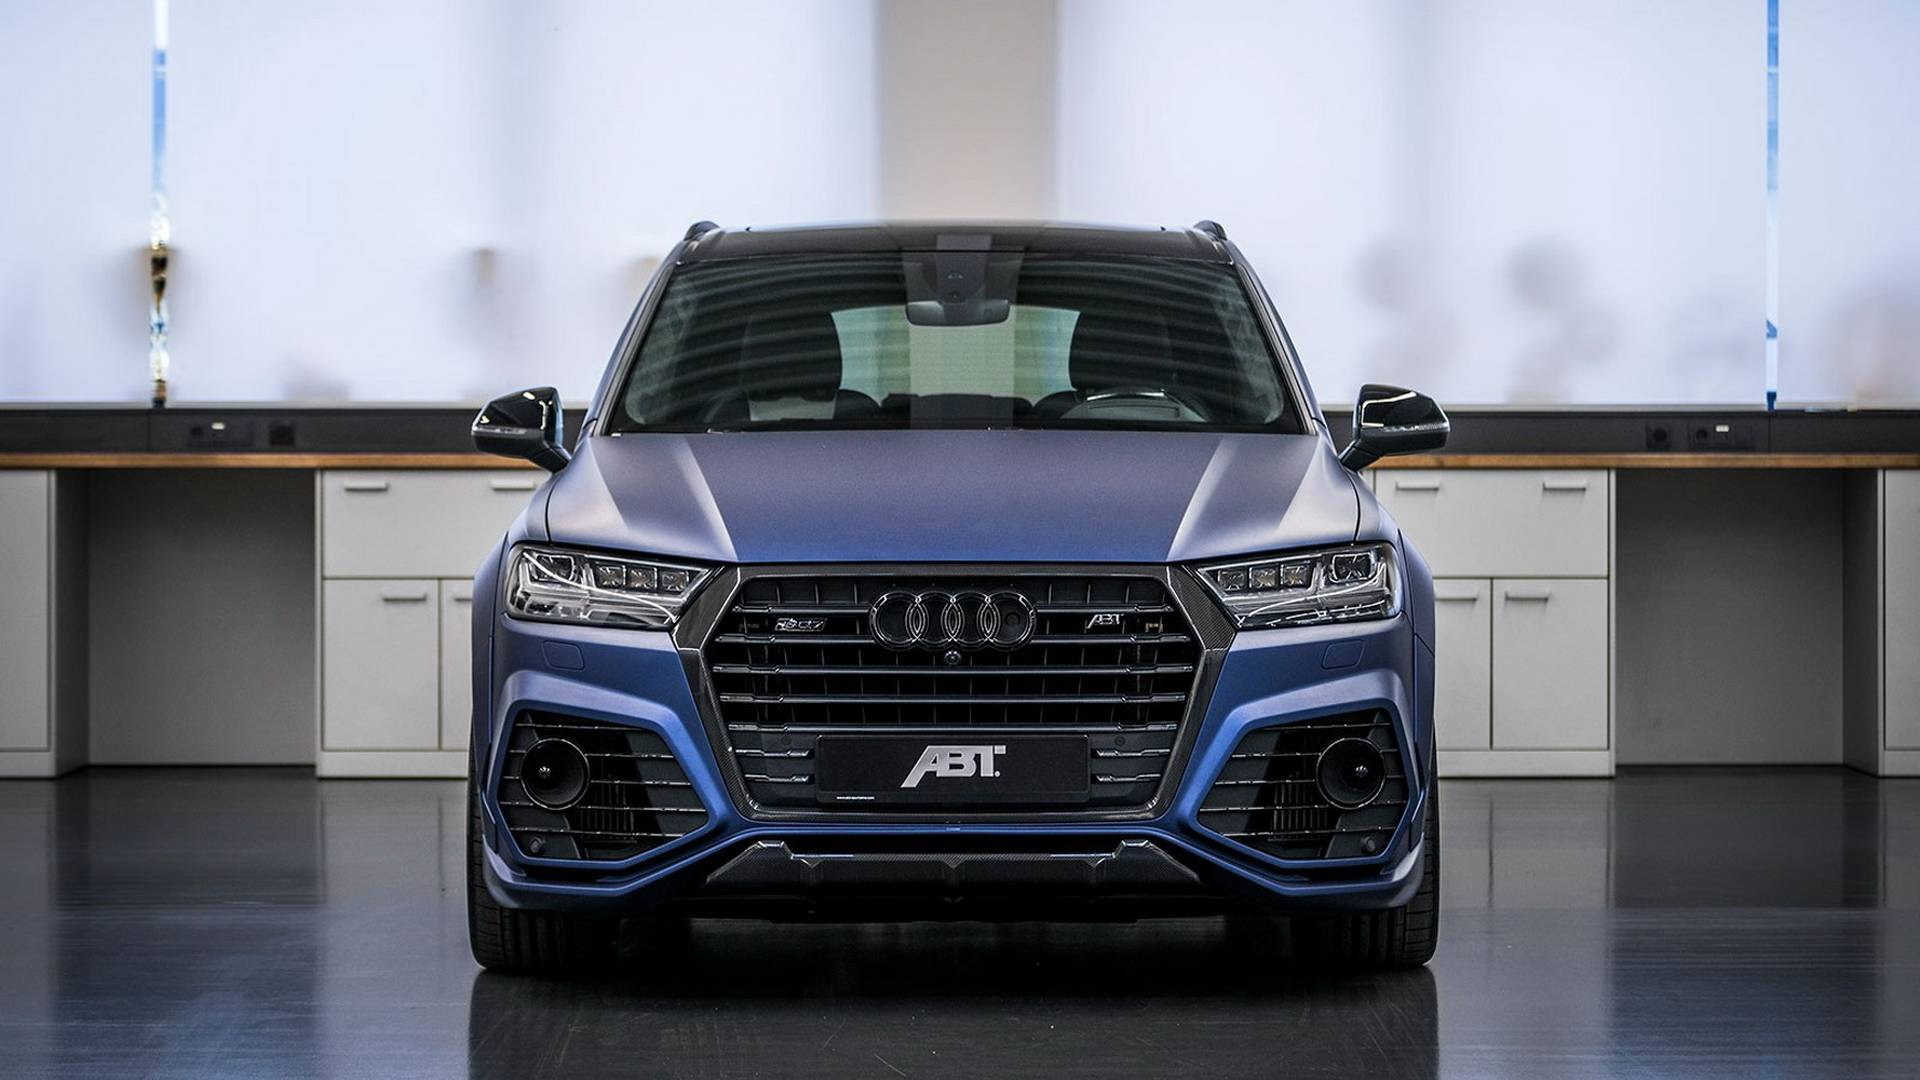 2018 Audi SQ7 TDI: Specs, Design, Price >> Audi Sq7 By Abt Detailed On Video 765 Lb Ft For 266 330